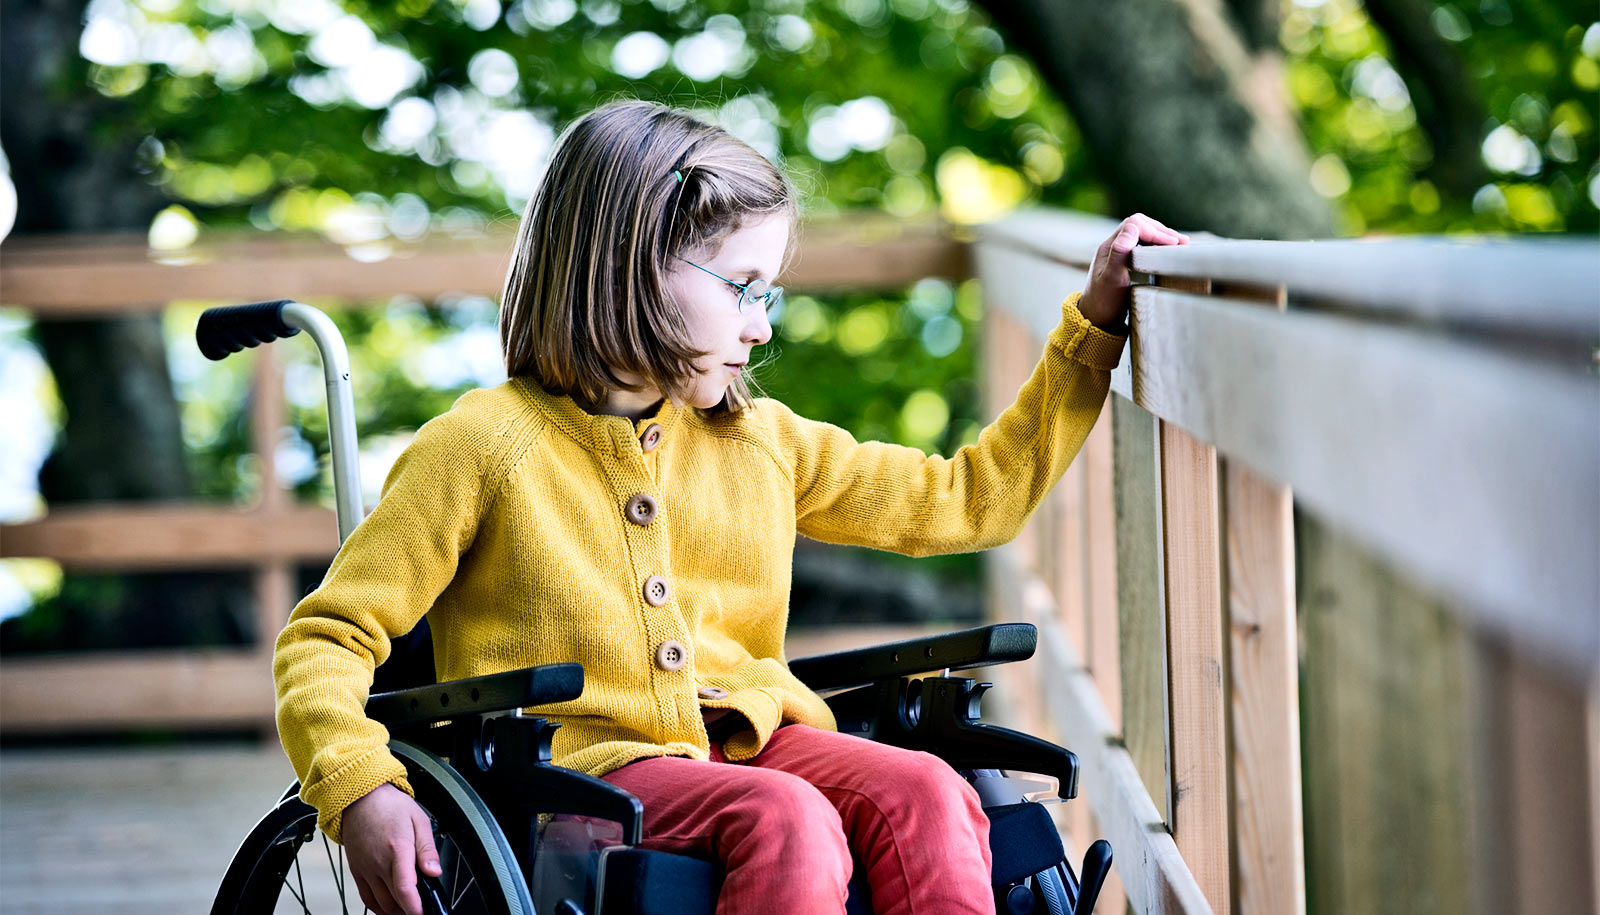 Nerve transfer restores some motion for kids with rare illness